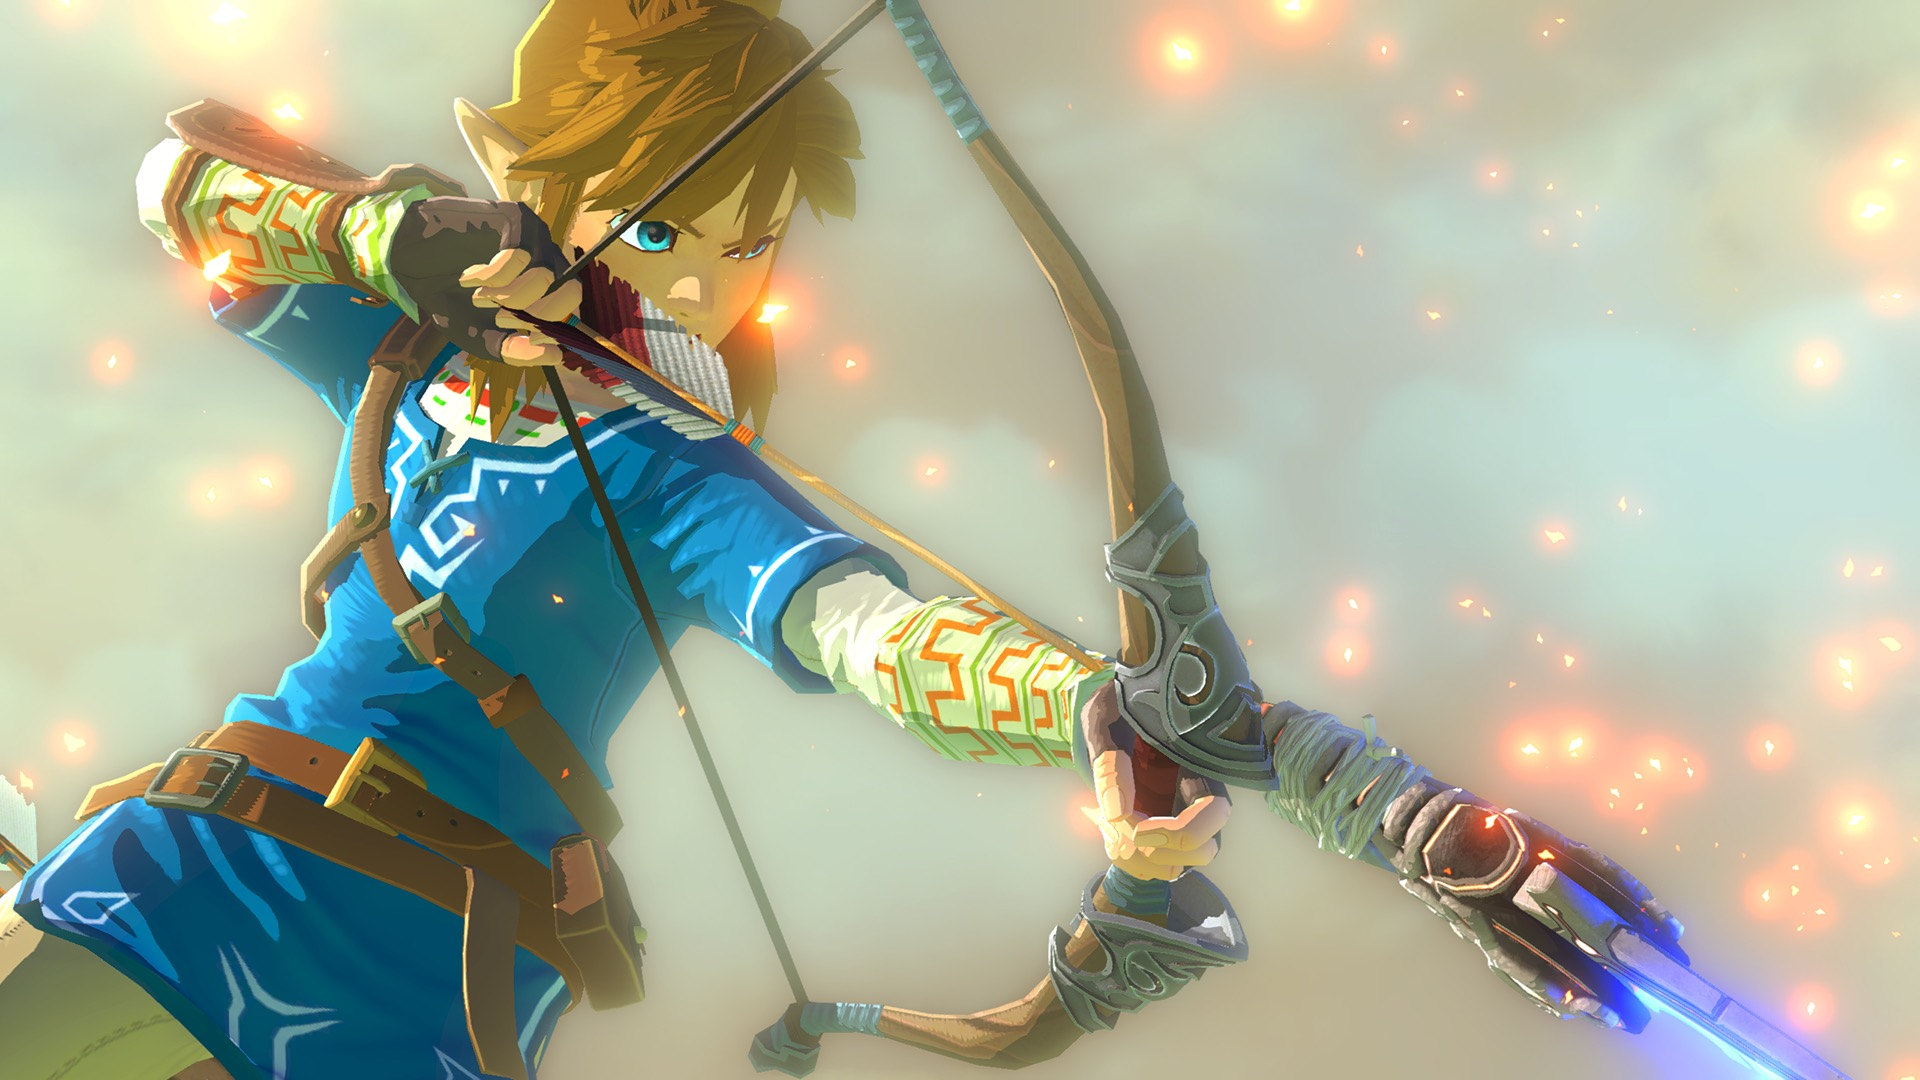 E3 2014: Character In The Legend of Zelda Wii U Trailer Was Link